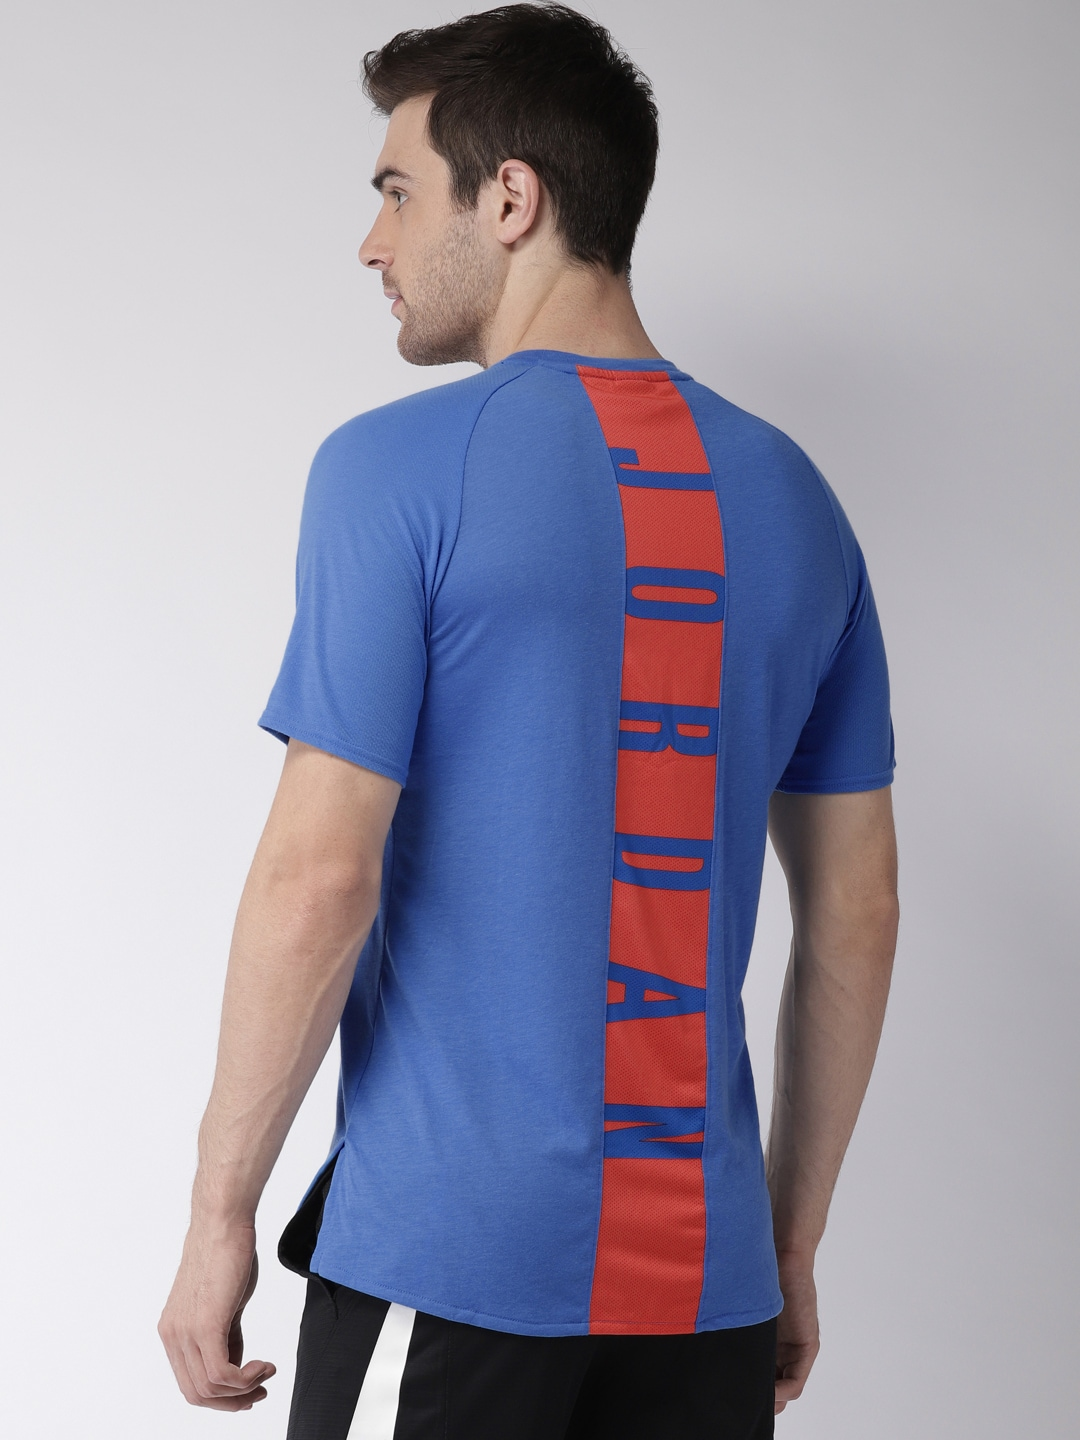 69d5d050136f76 Nike Training Tshirts - Buy Nike Training Tshirts online in India